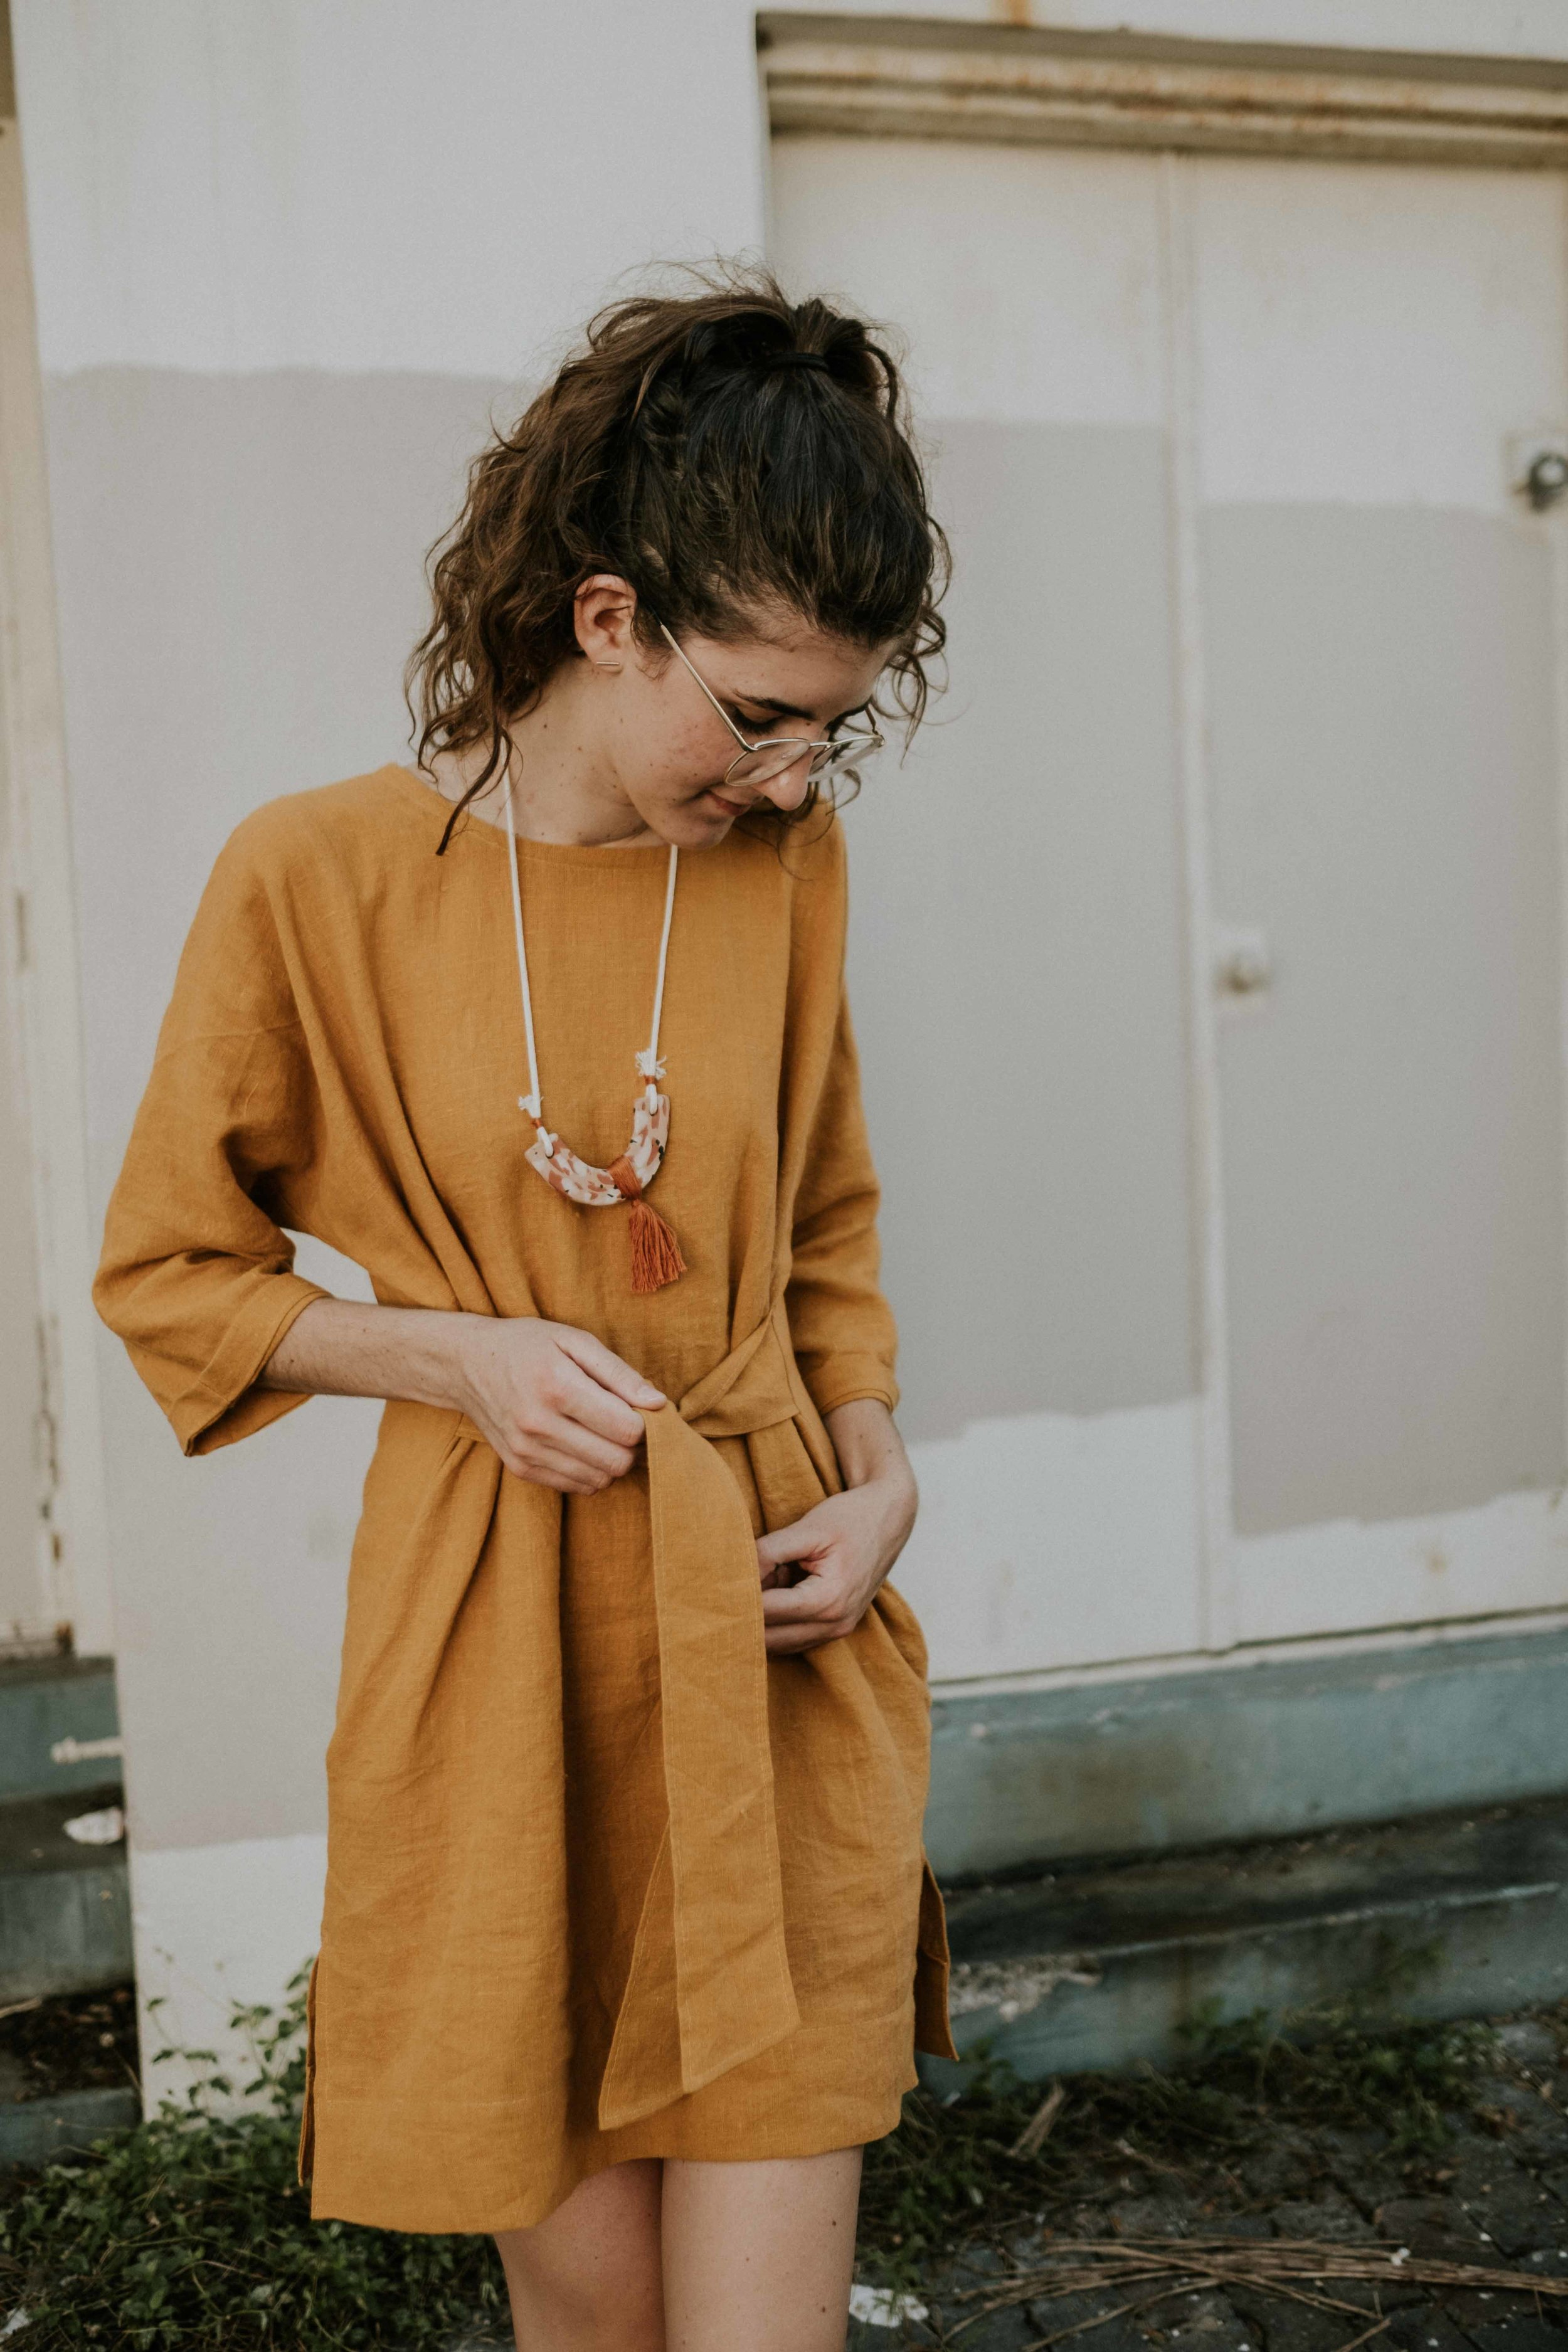 Amanda modeling the Gabriella Tie Dress featured in golden linen (my personal favorite!)